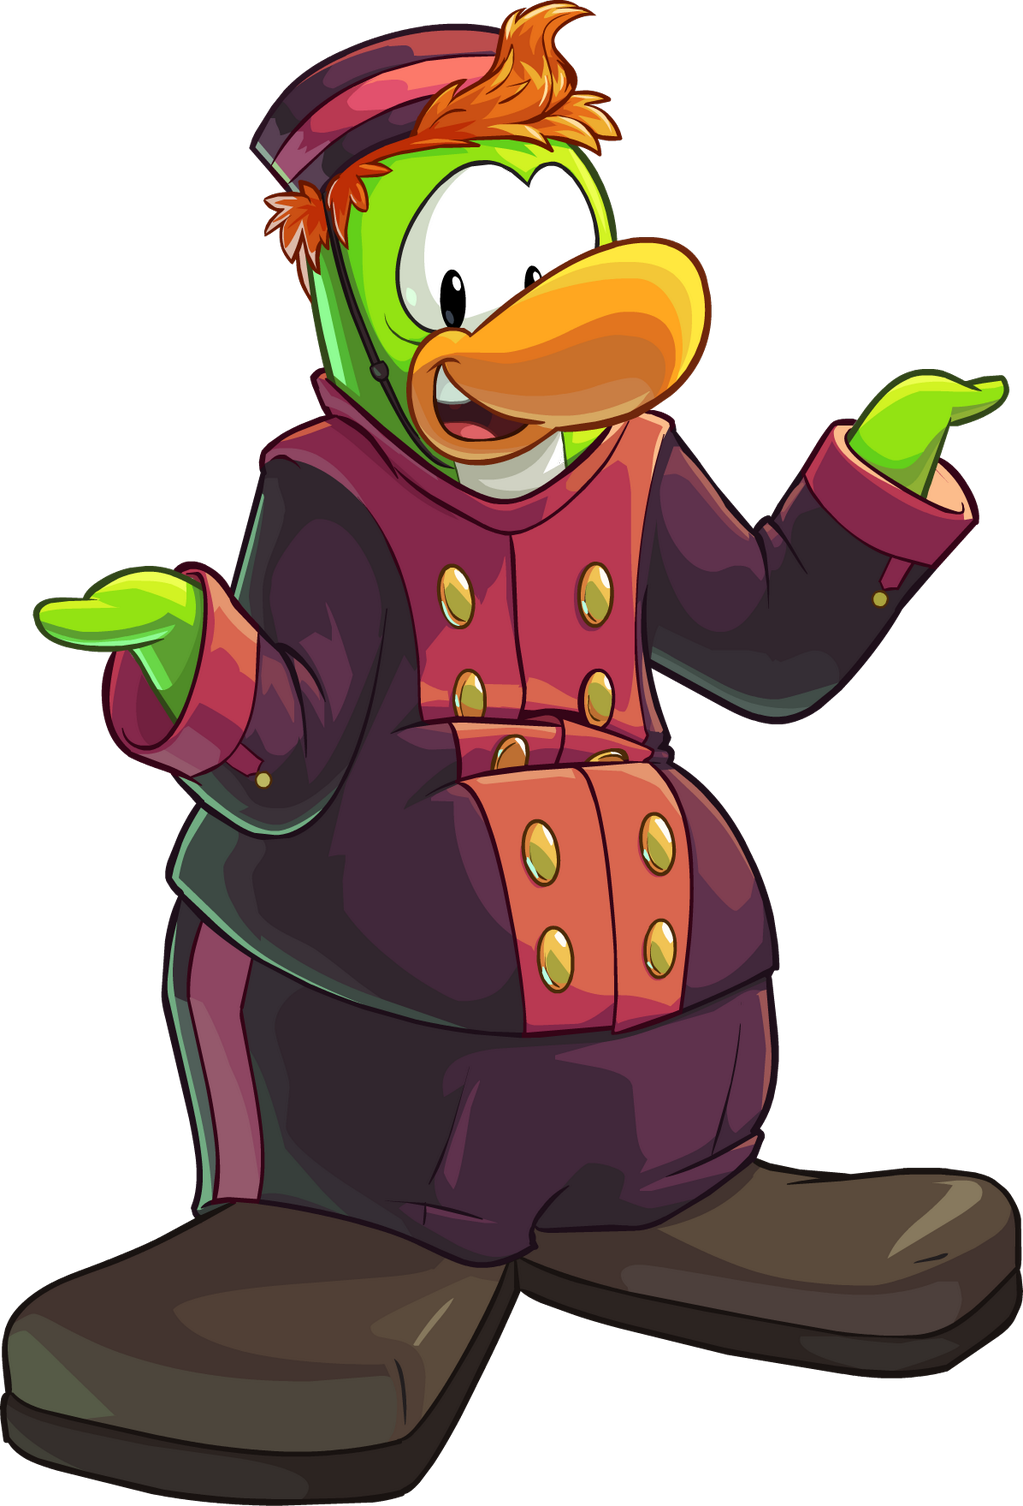 Image Skip The Bellhop Png Club Penguin Wiki Fandom